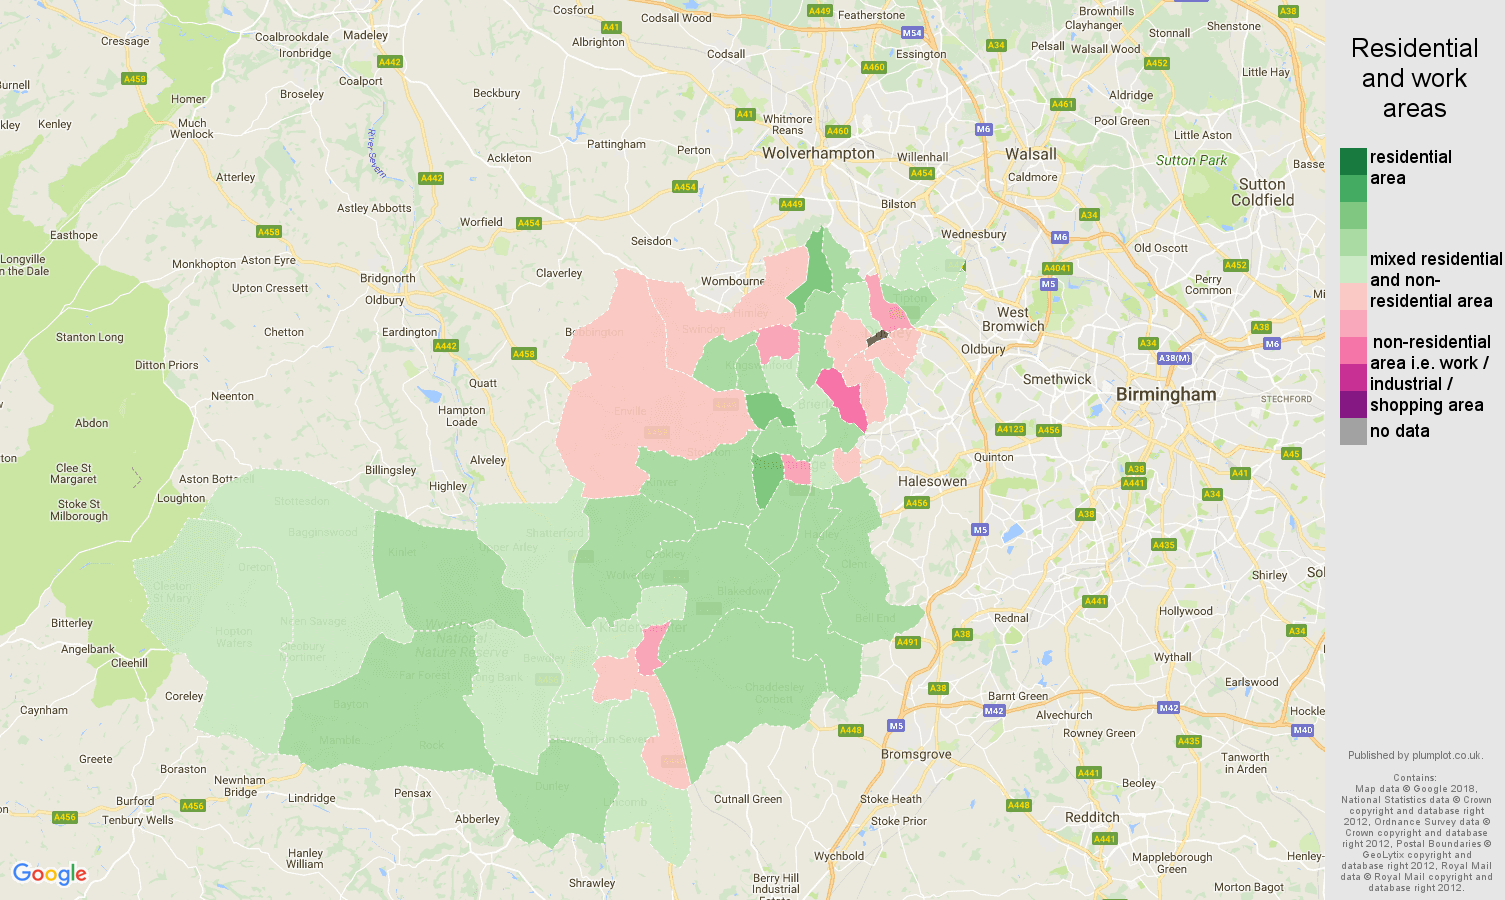 Dudley residential areas map